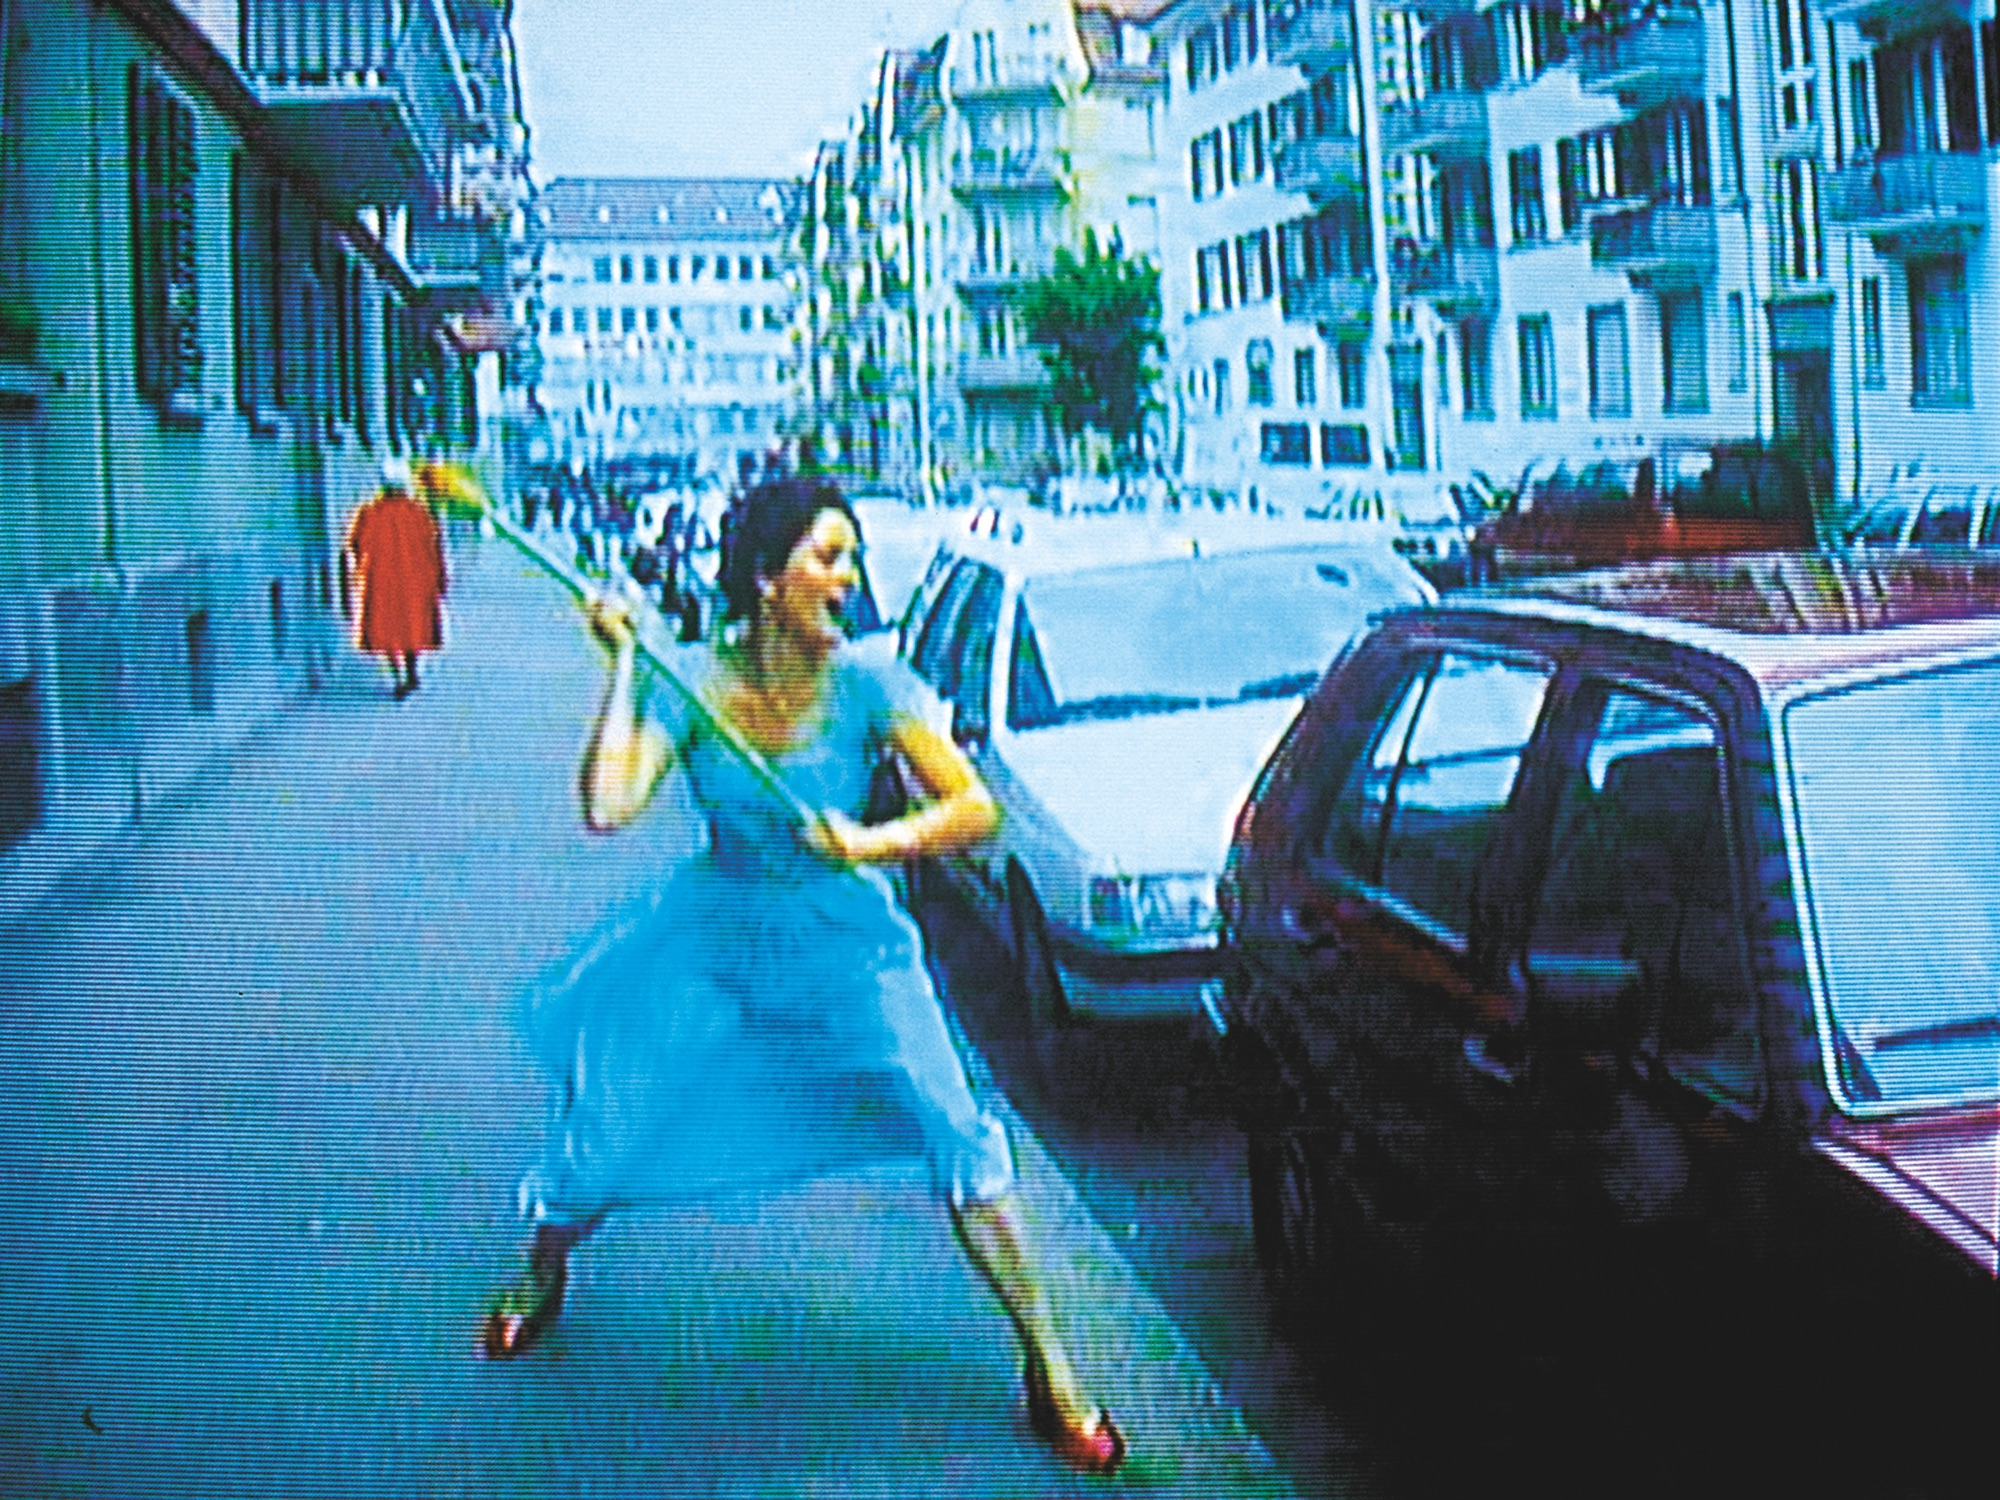 Ever is Over All, 1997, audio video installation by Pipilotti Rist (video still) © Pipilotti Rist. Courtesy the artist, Hauser & Wirth and Luhring Augustine